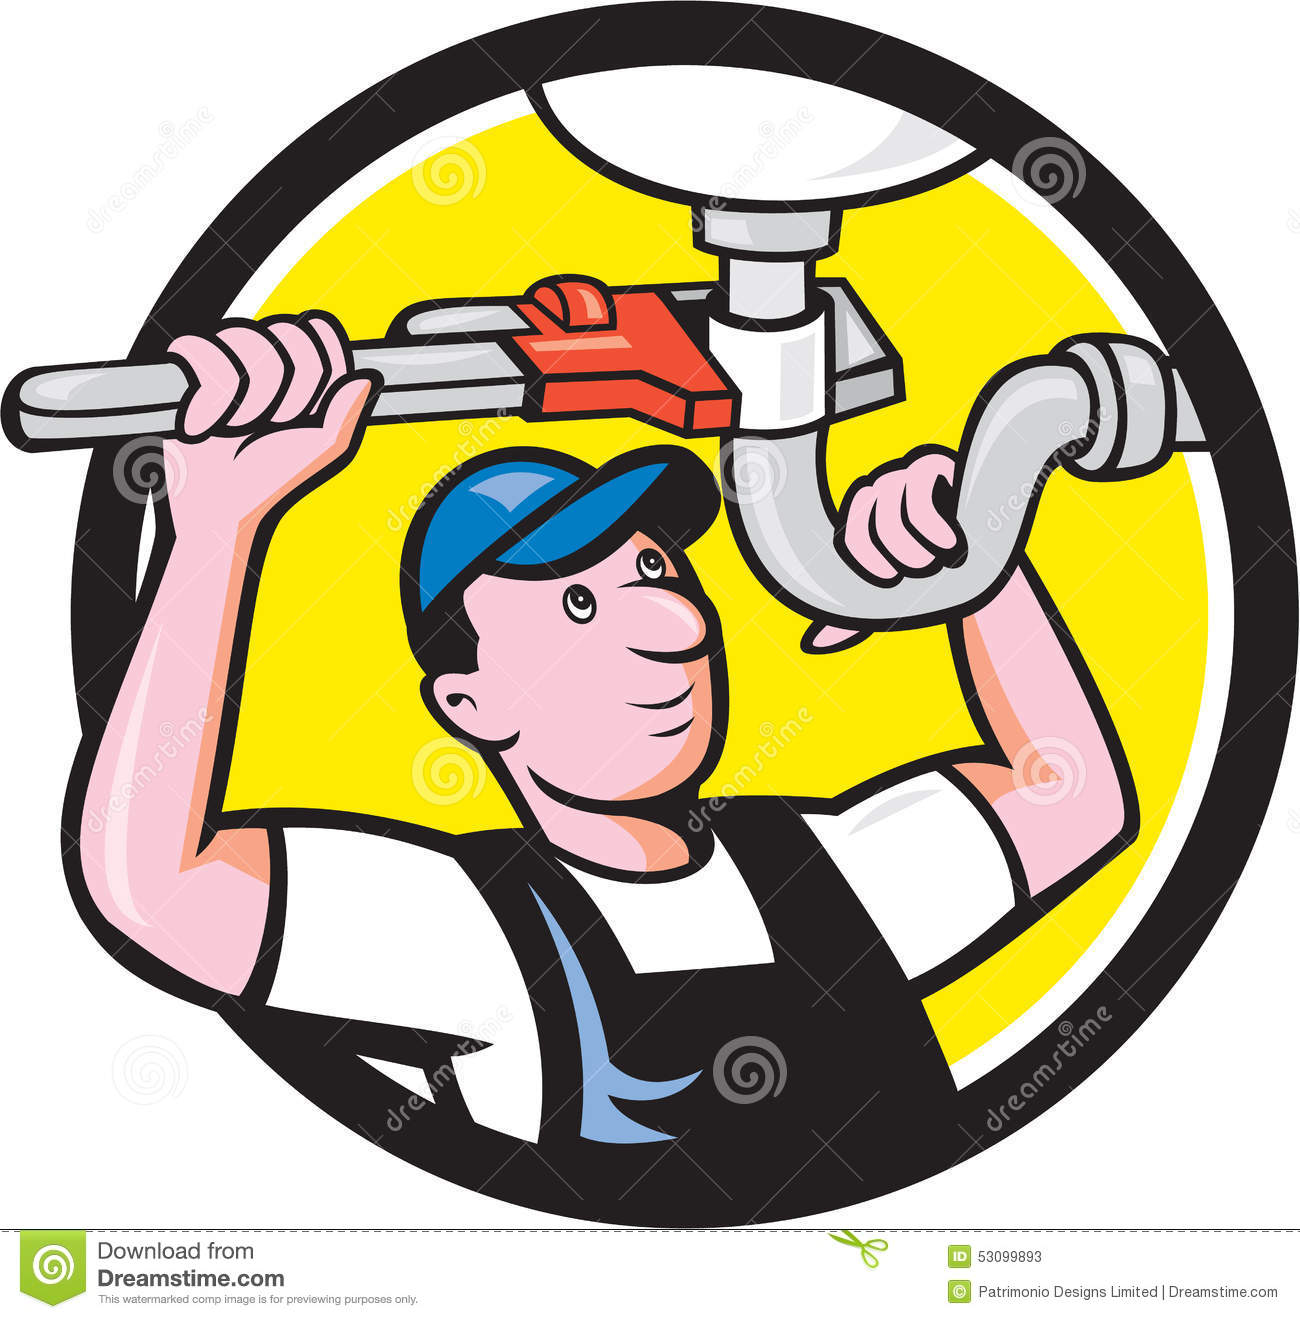 Plumber free download best. Pipe clipart animated